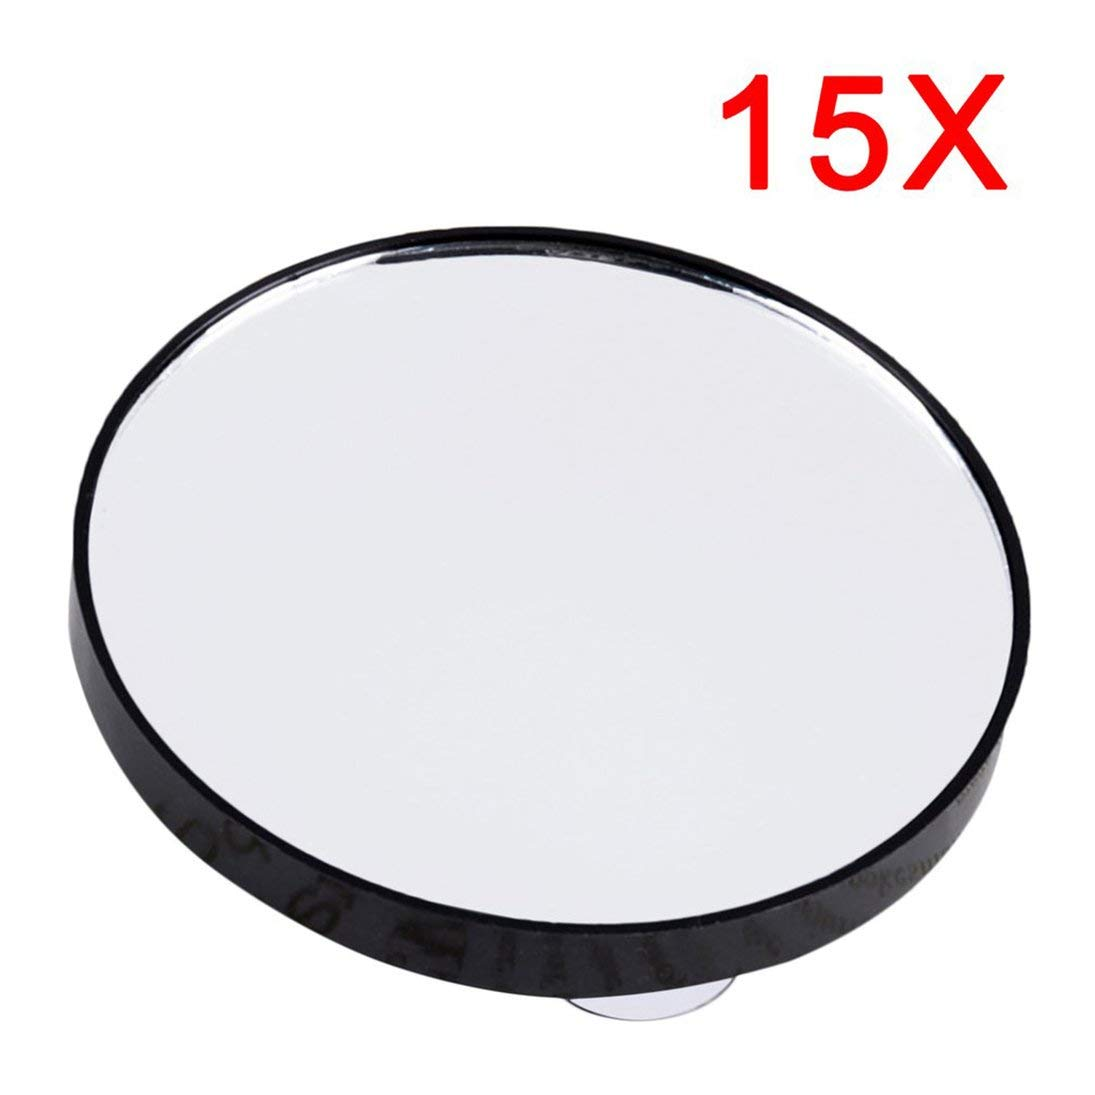 Baynne Vanity Makeup Mirror 5X 10X 15X Magnifying Mirror With Two Suction Cups Cosmetics Tools Mini Round Mirror Bathroom Mirror